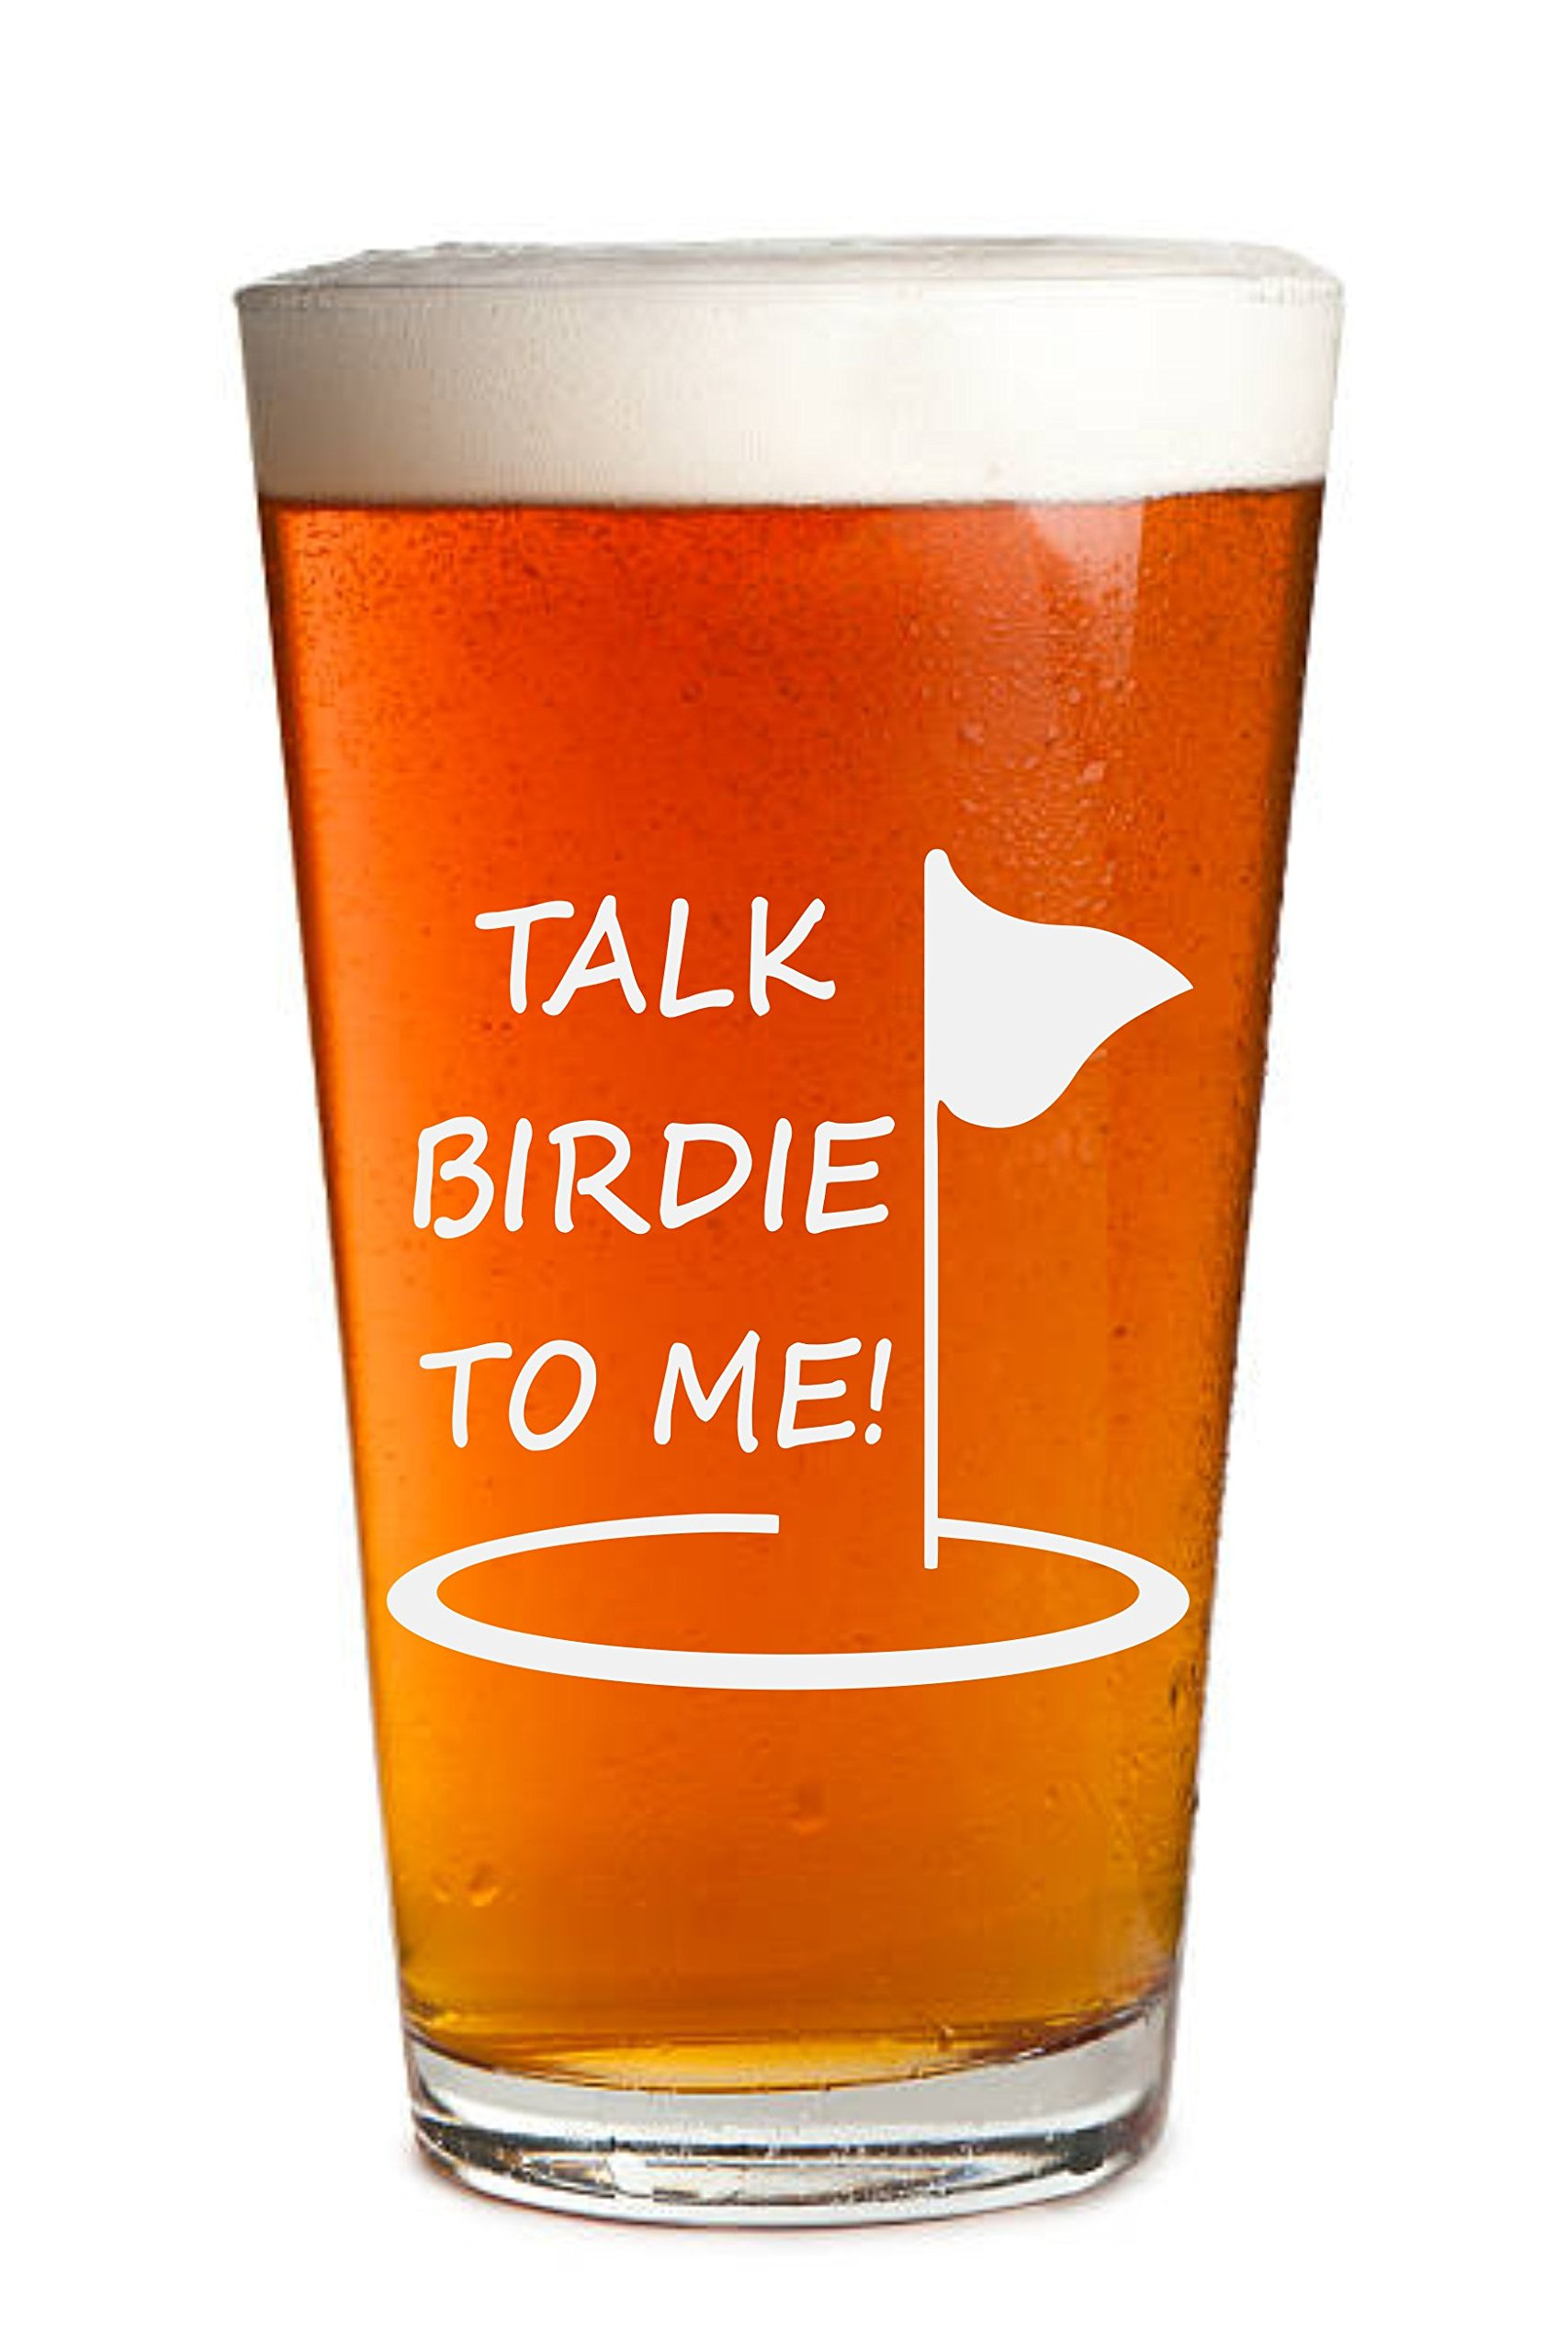 Sandblast Creations Engraved Beer Glass – Talk Birdie to Me - Golf Gift - Golfer Beer Glass - 16oz Clear Pint / Mixing Glass - Funny Gifts for Men and Women